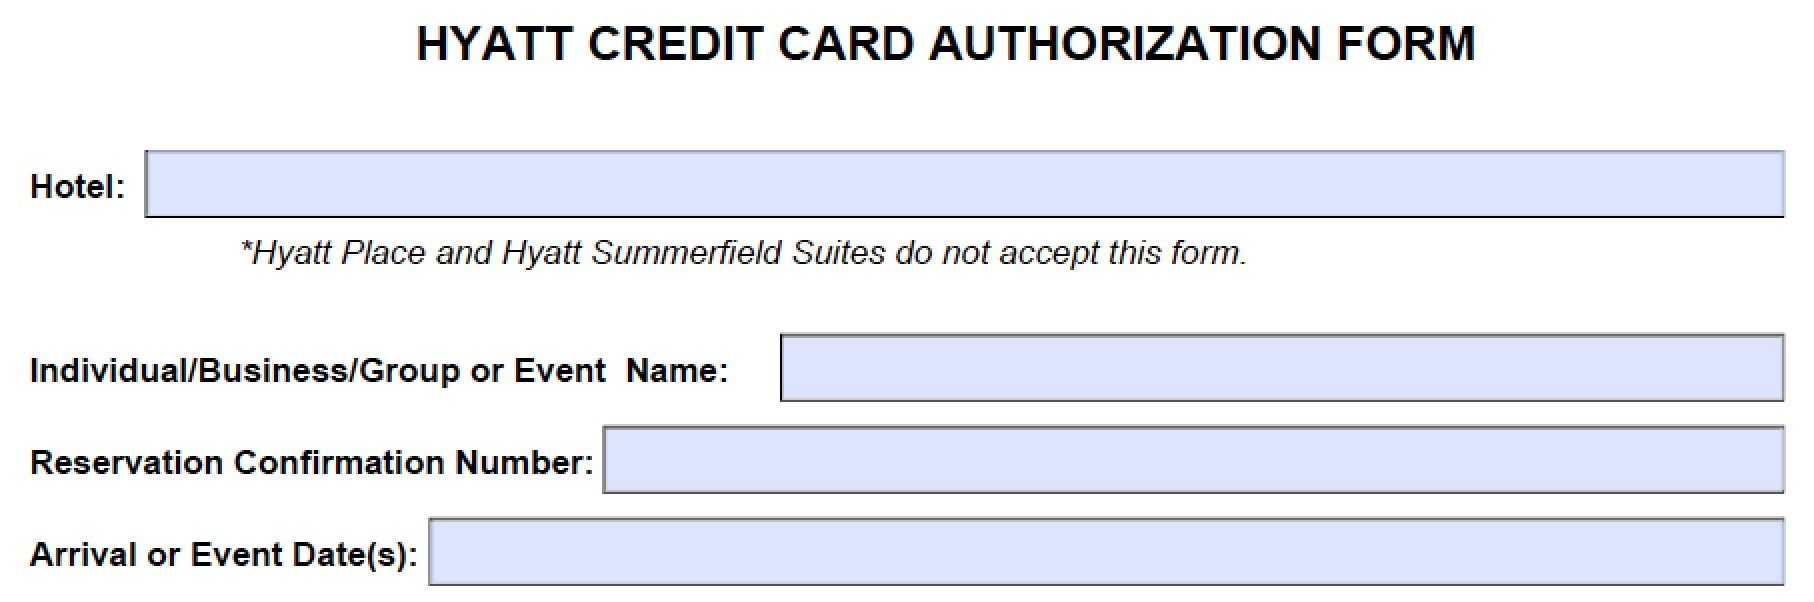 hyatt credit card authorization form Download Hyatt Credit Card Authorization Form Template | PDF ...